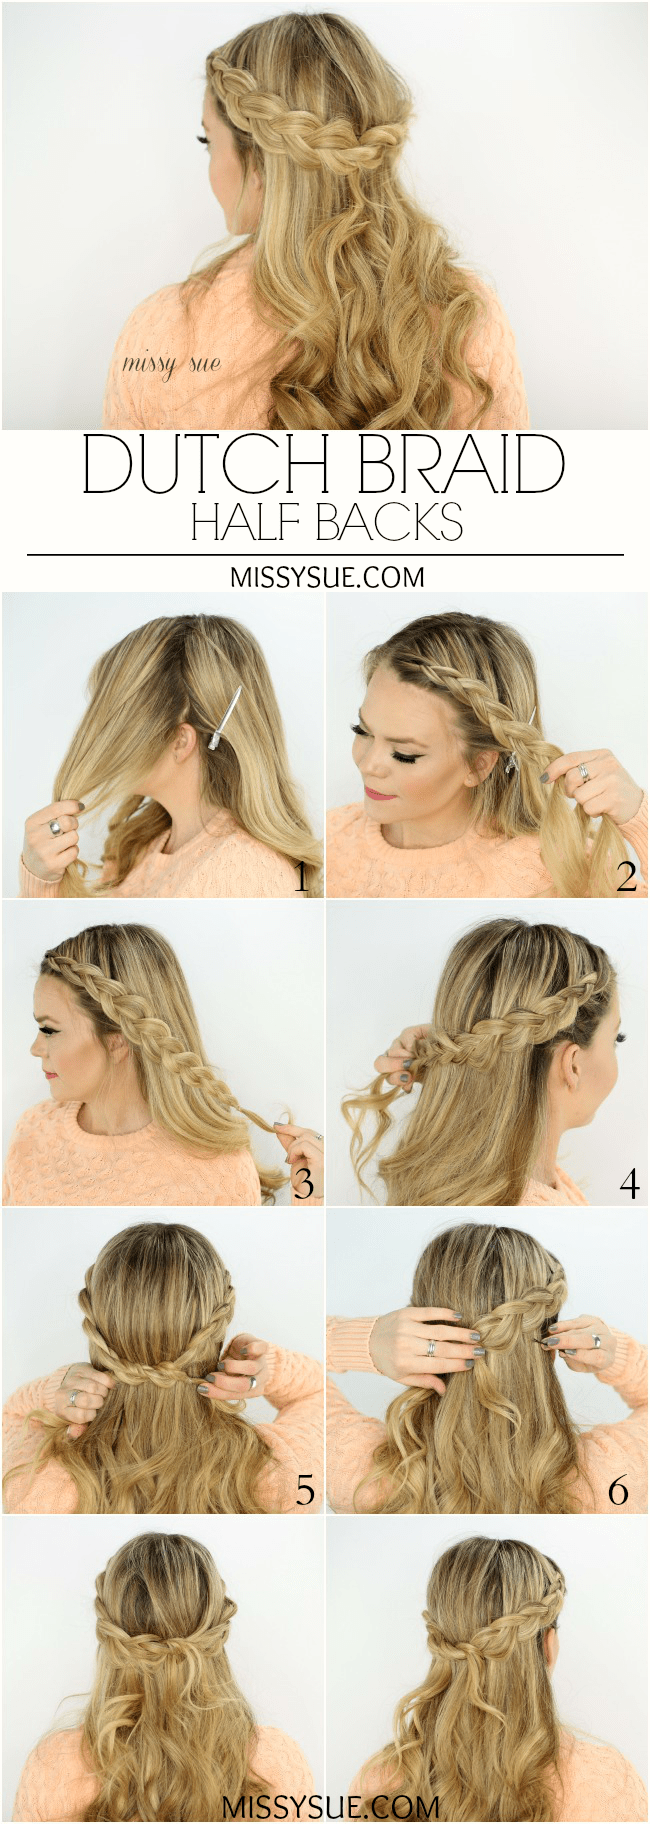 Dutch Braid Half Backs | MissySue.com